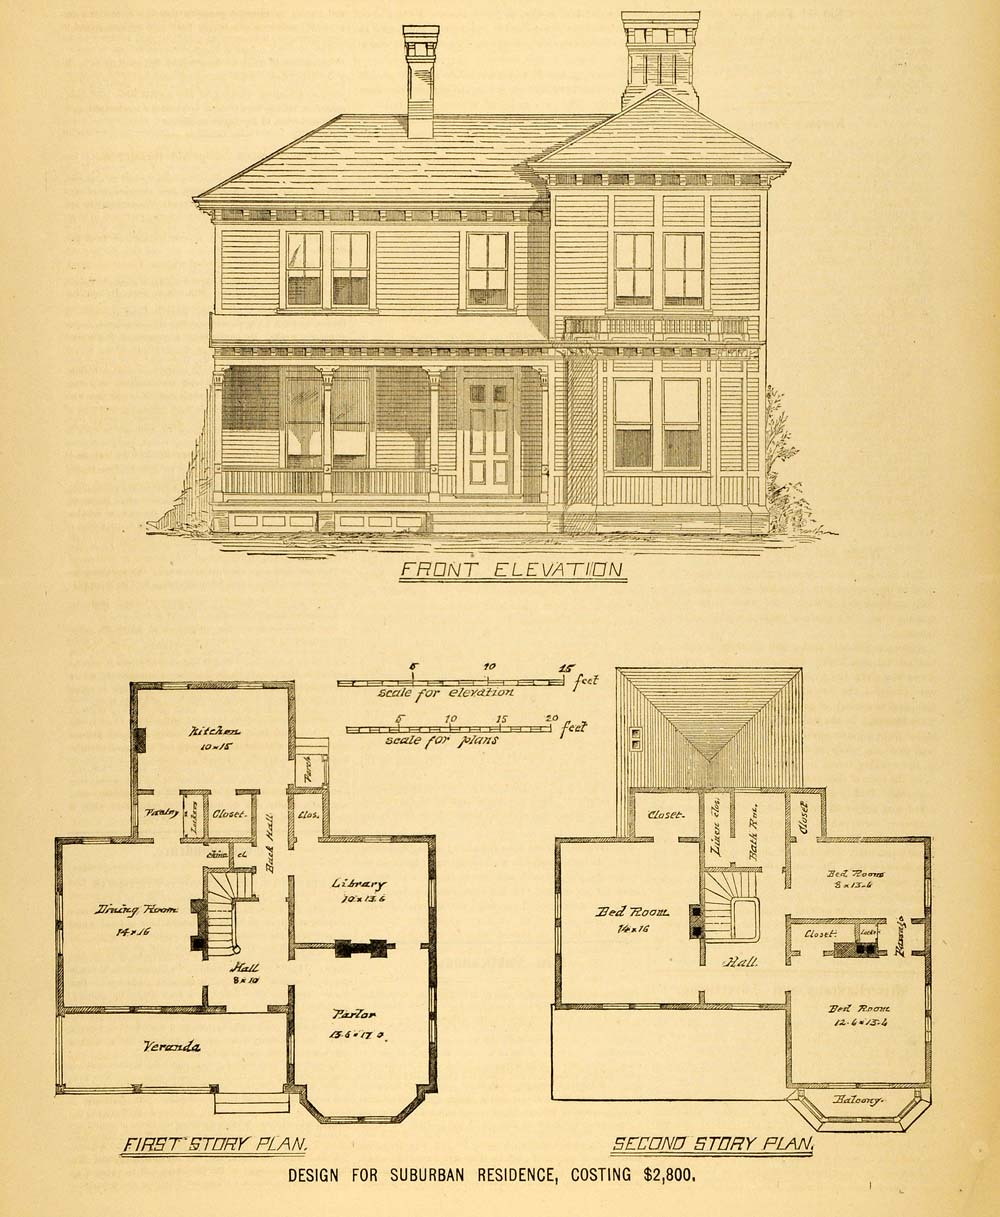 1878 print house architectural design floor plans for Architectural house design with floor plan